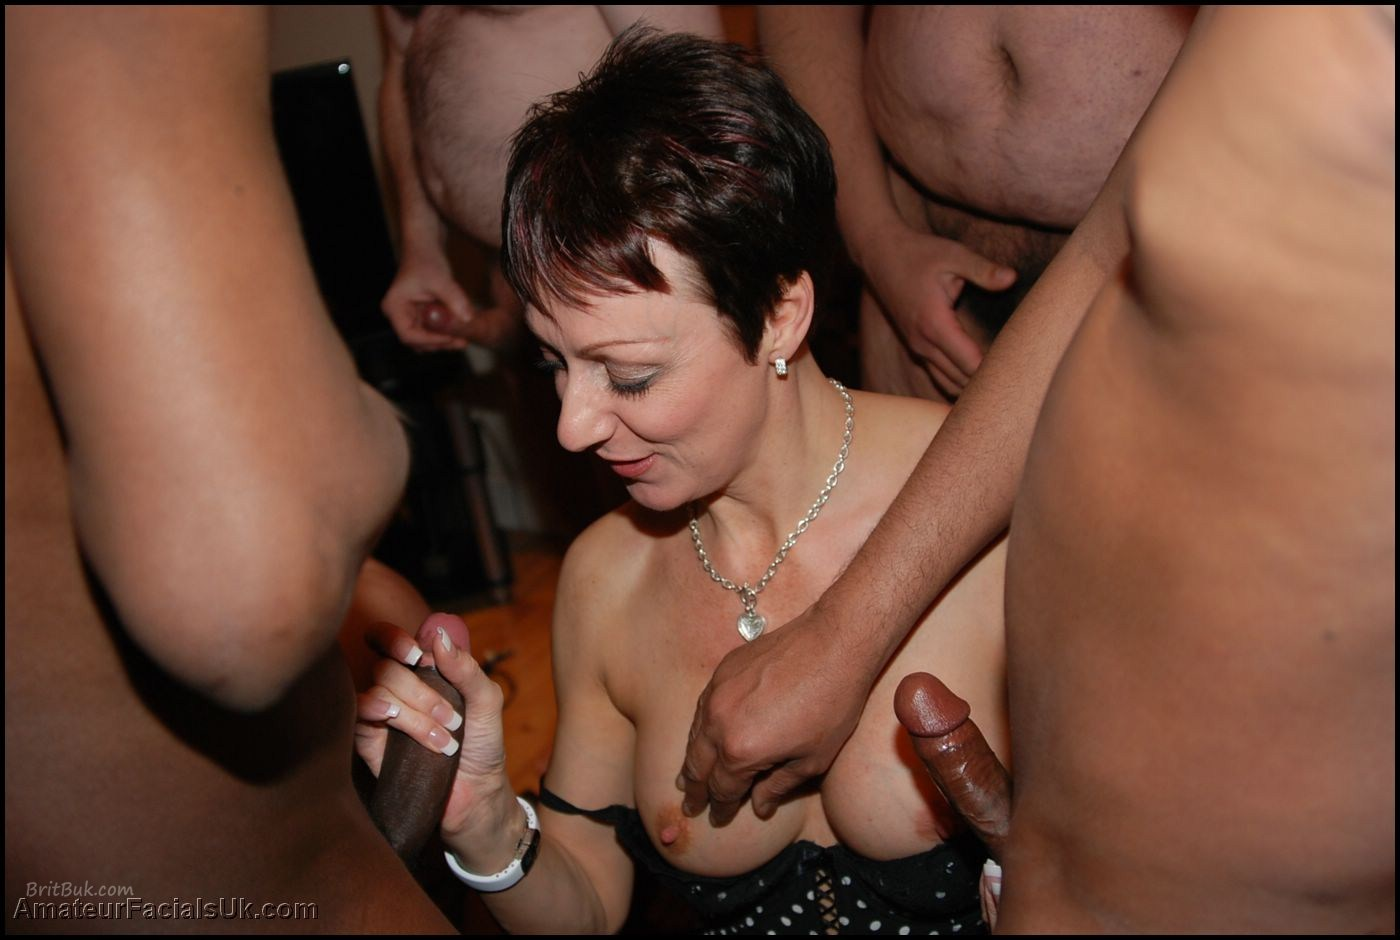 magnificent idea necessary breast italian handjob cock and anal pity, that now